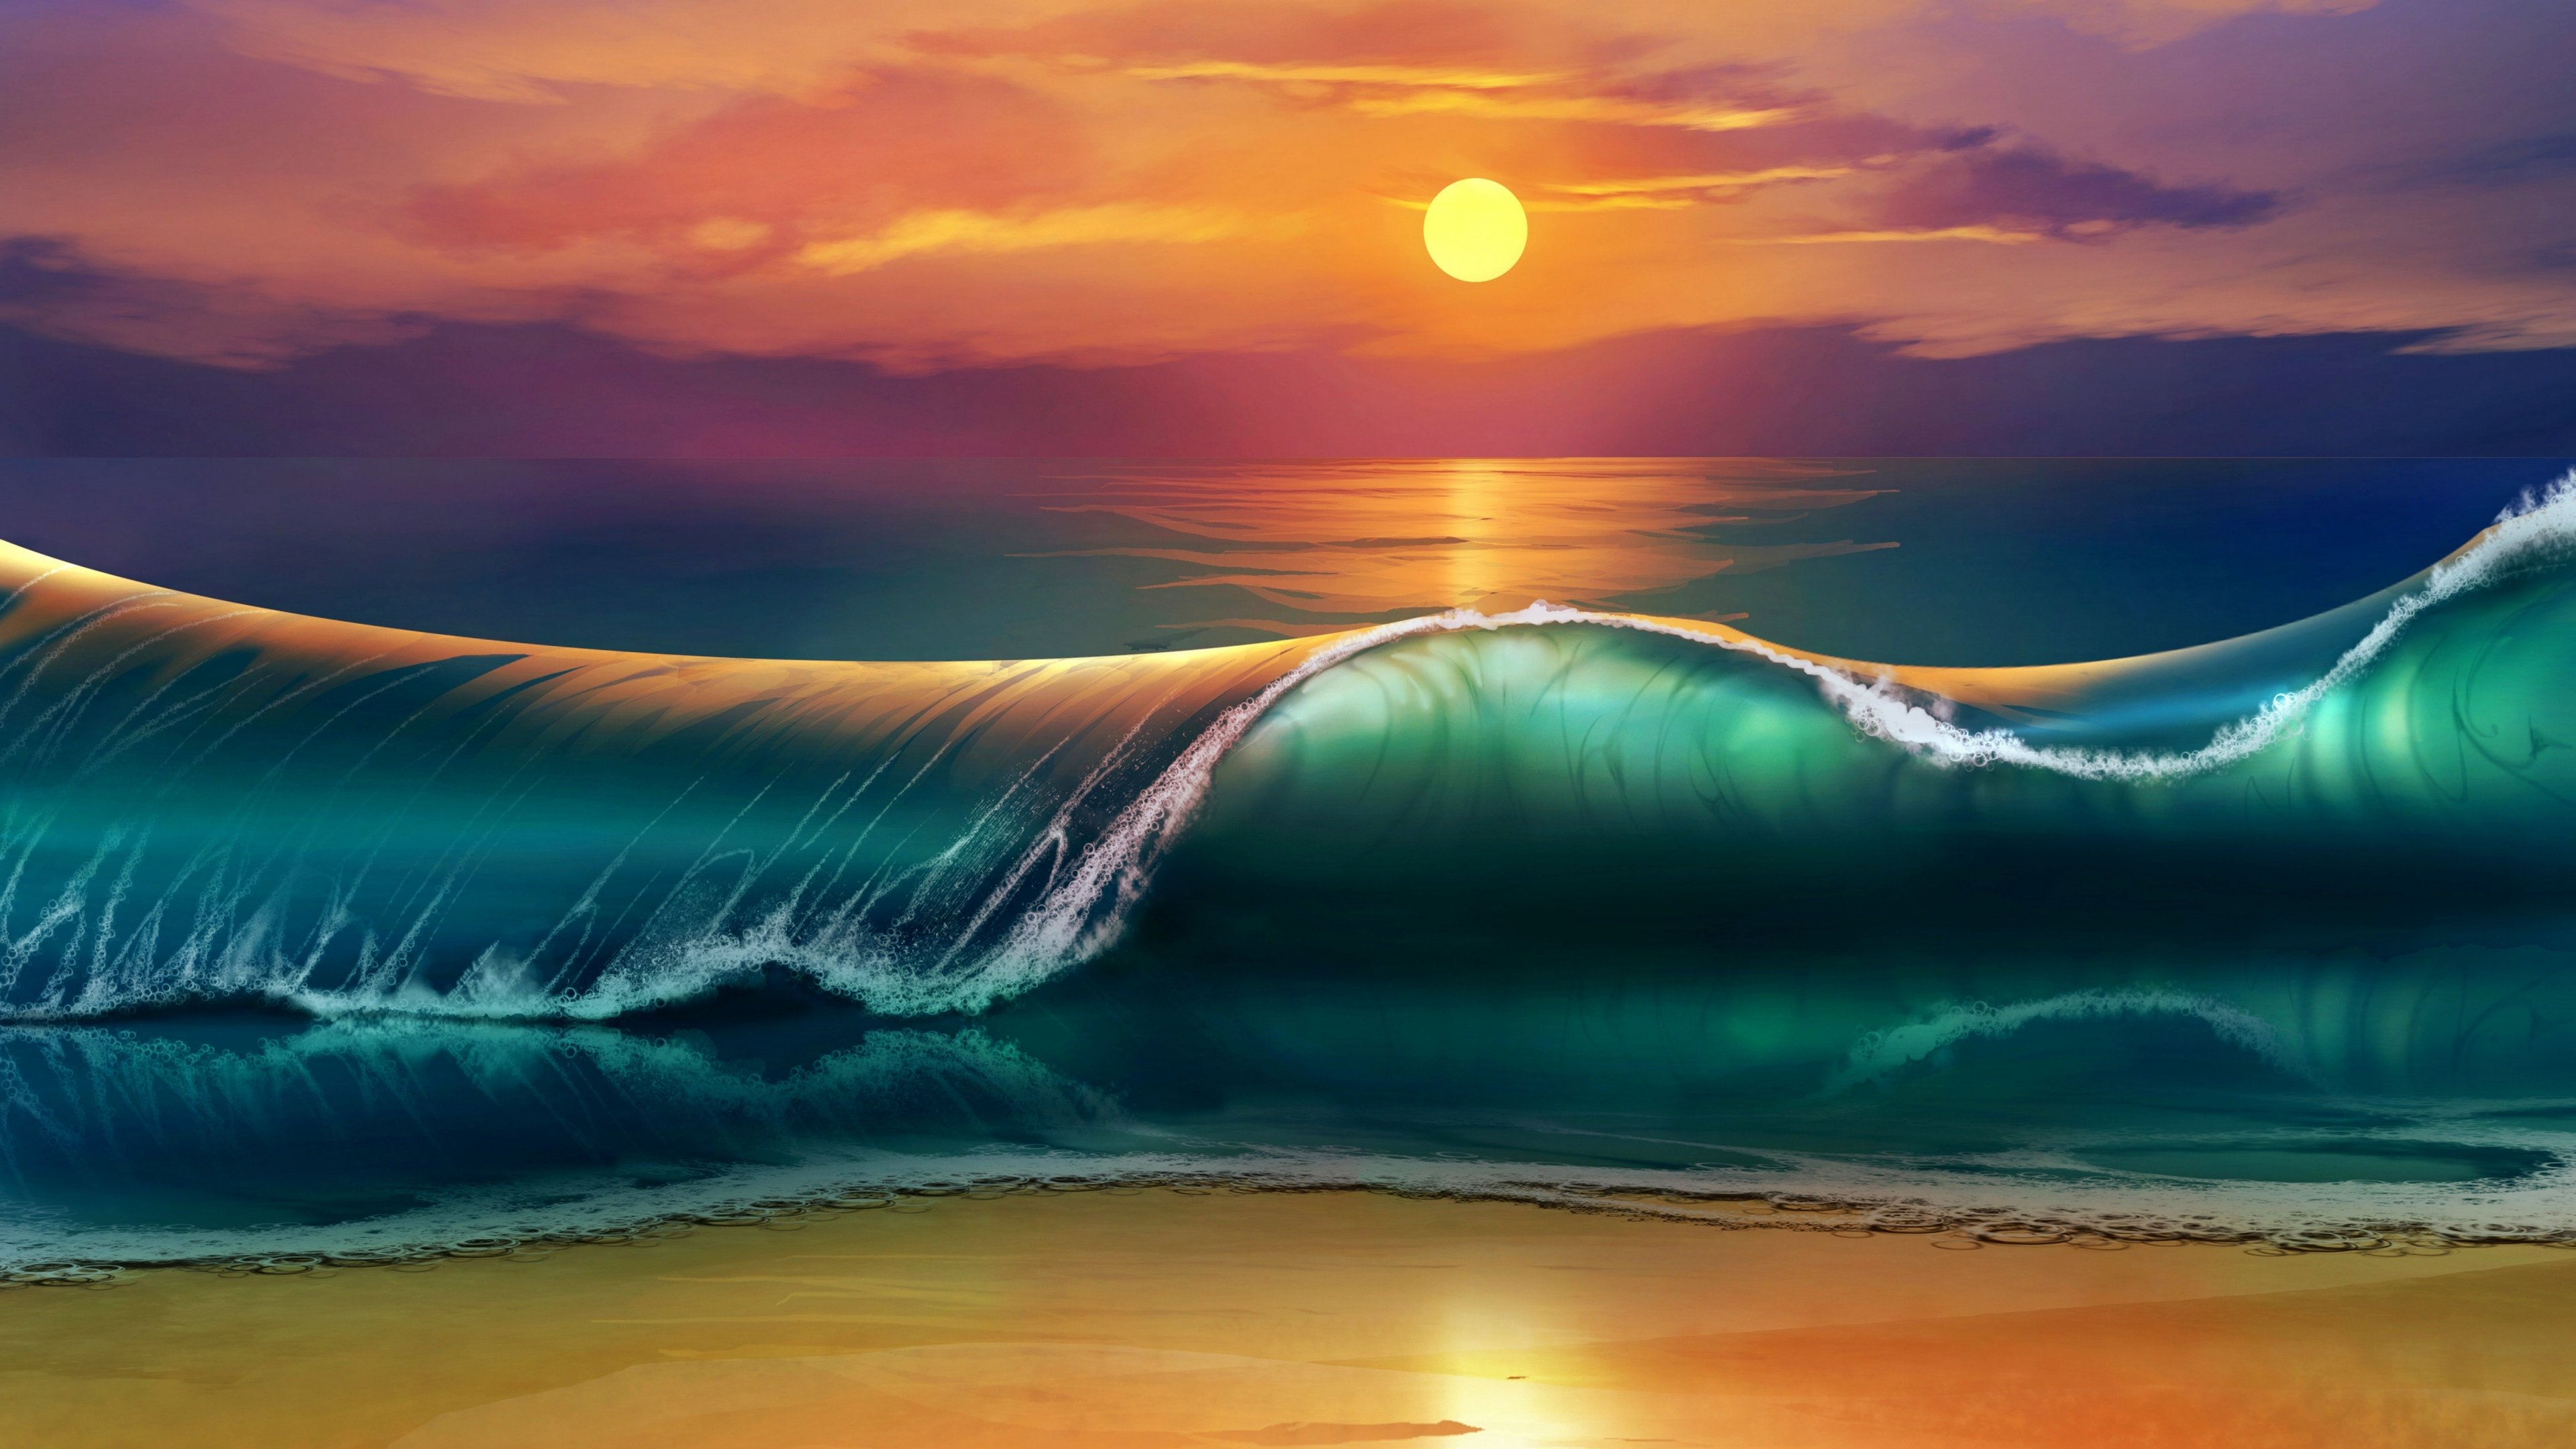 SunsetUltra HD 4k Wallpapers Wide Screen Wallpaper 1080p2K4K 3840x2160